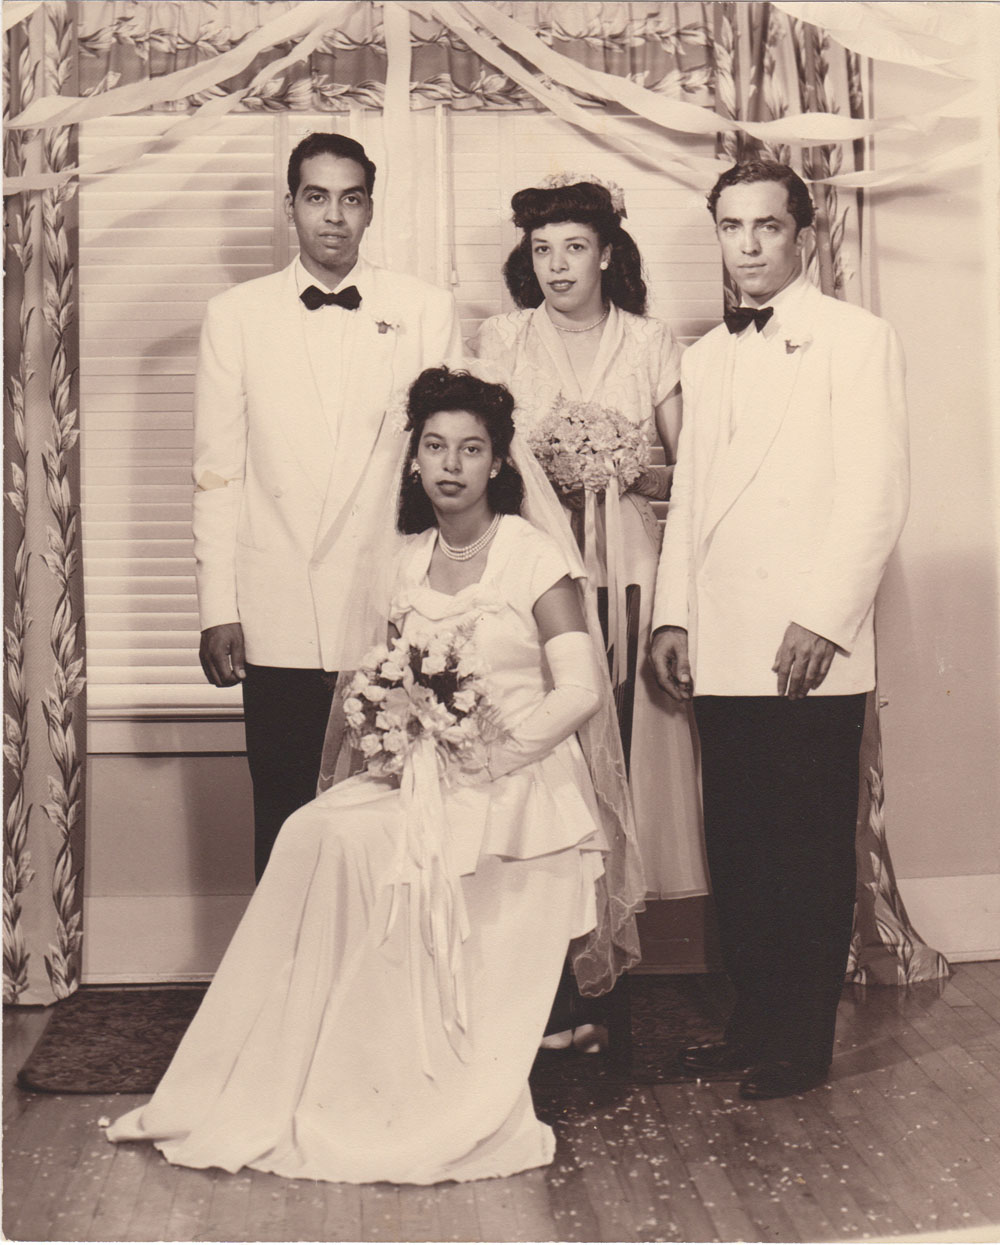 Paul, Betty seated, Maid of Honor, Best man - Louis Cleage